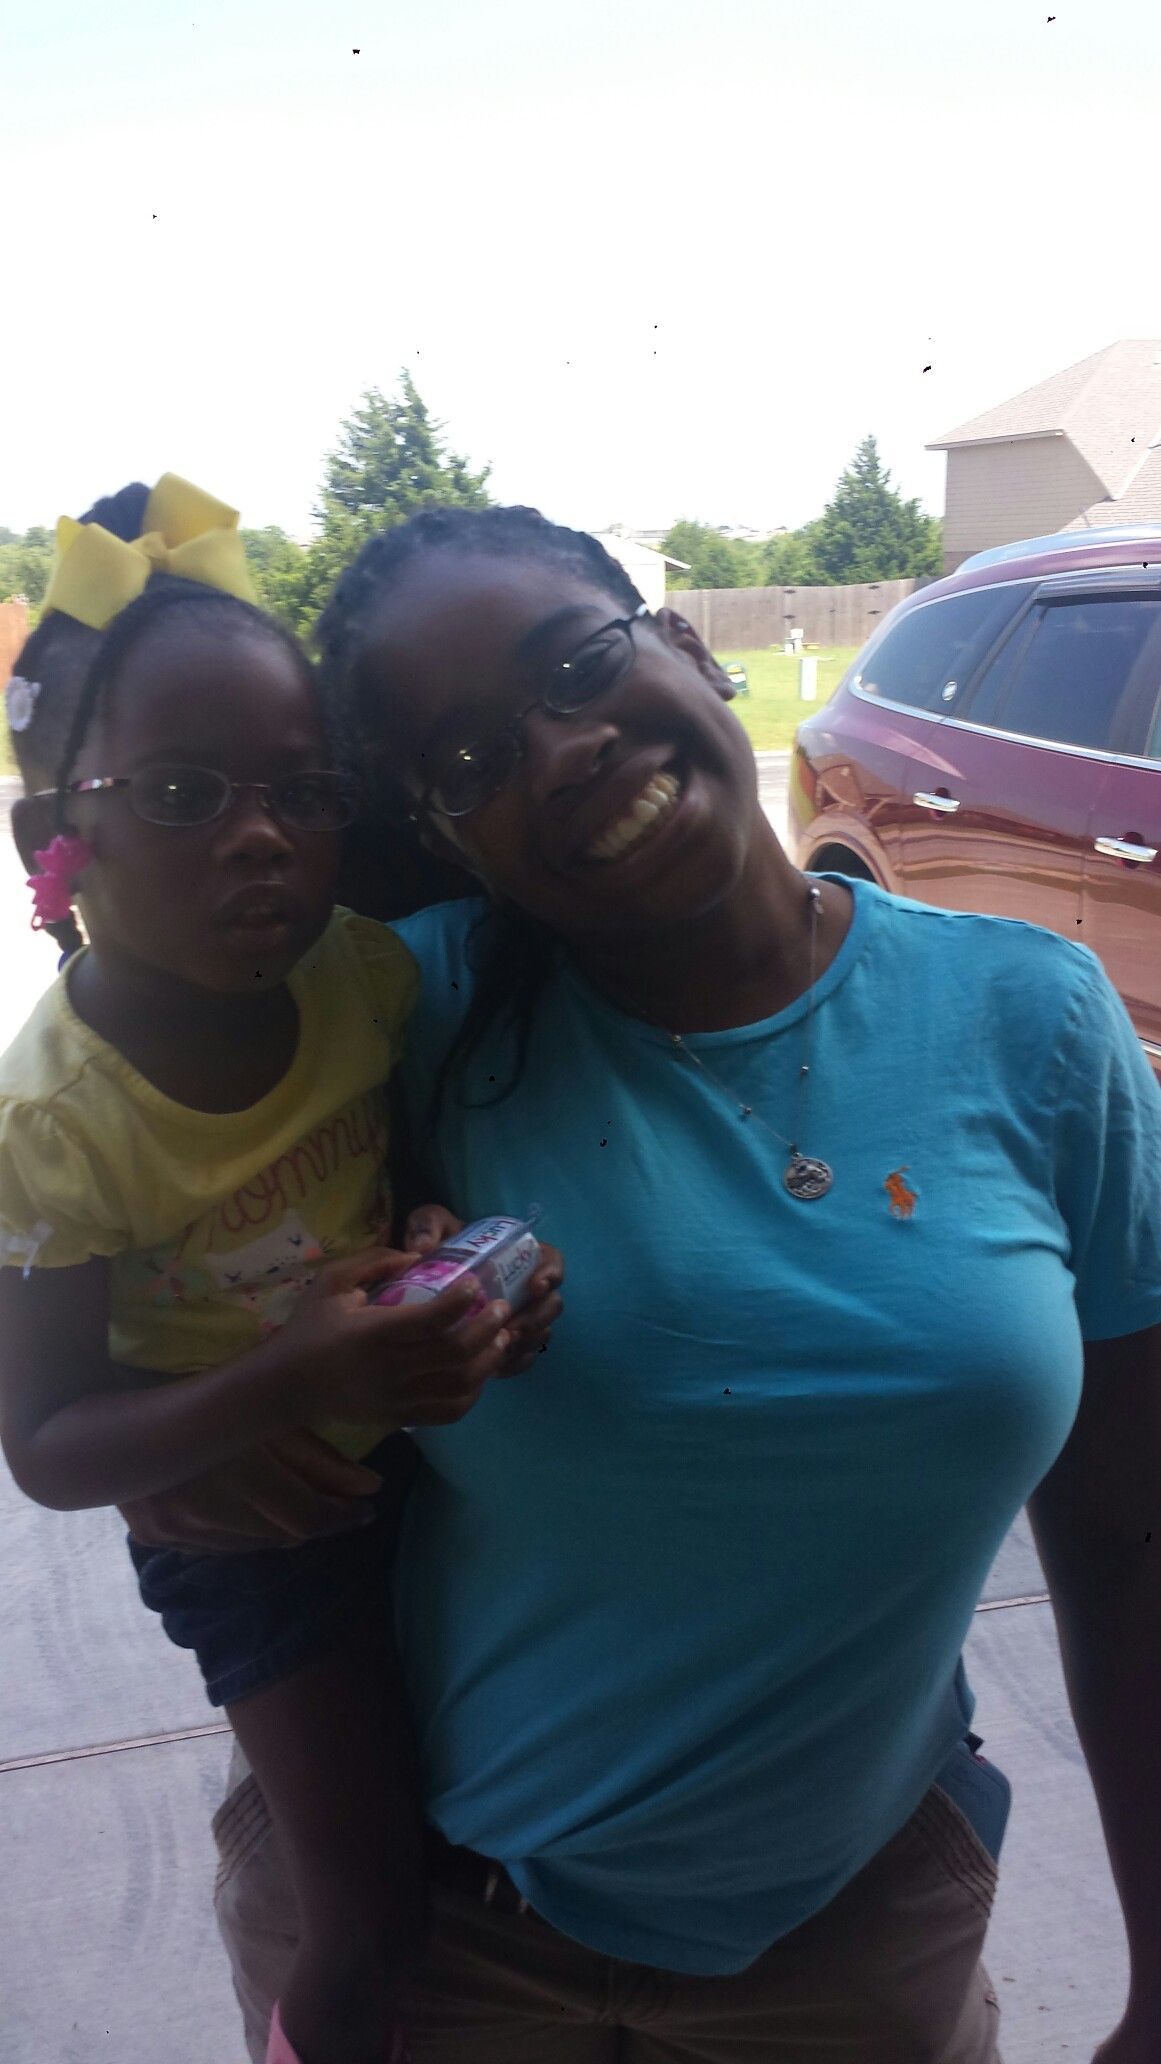 Auntie with my cousin/her daughter. #twins.